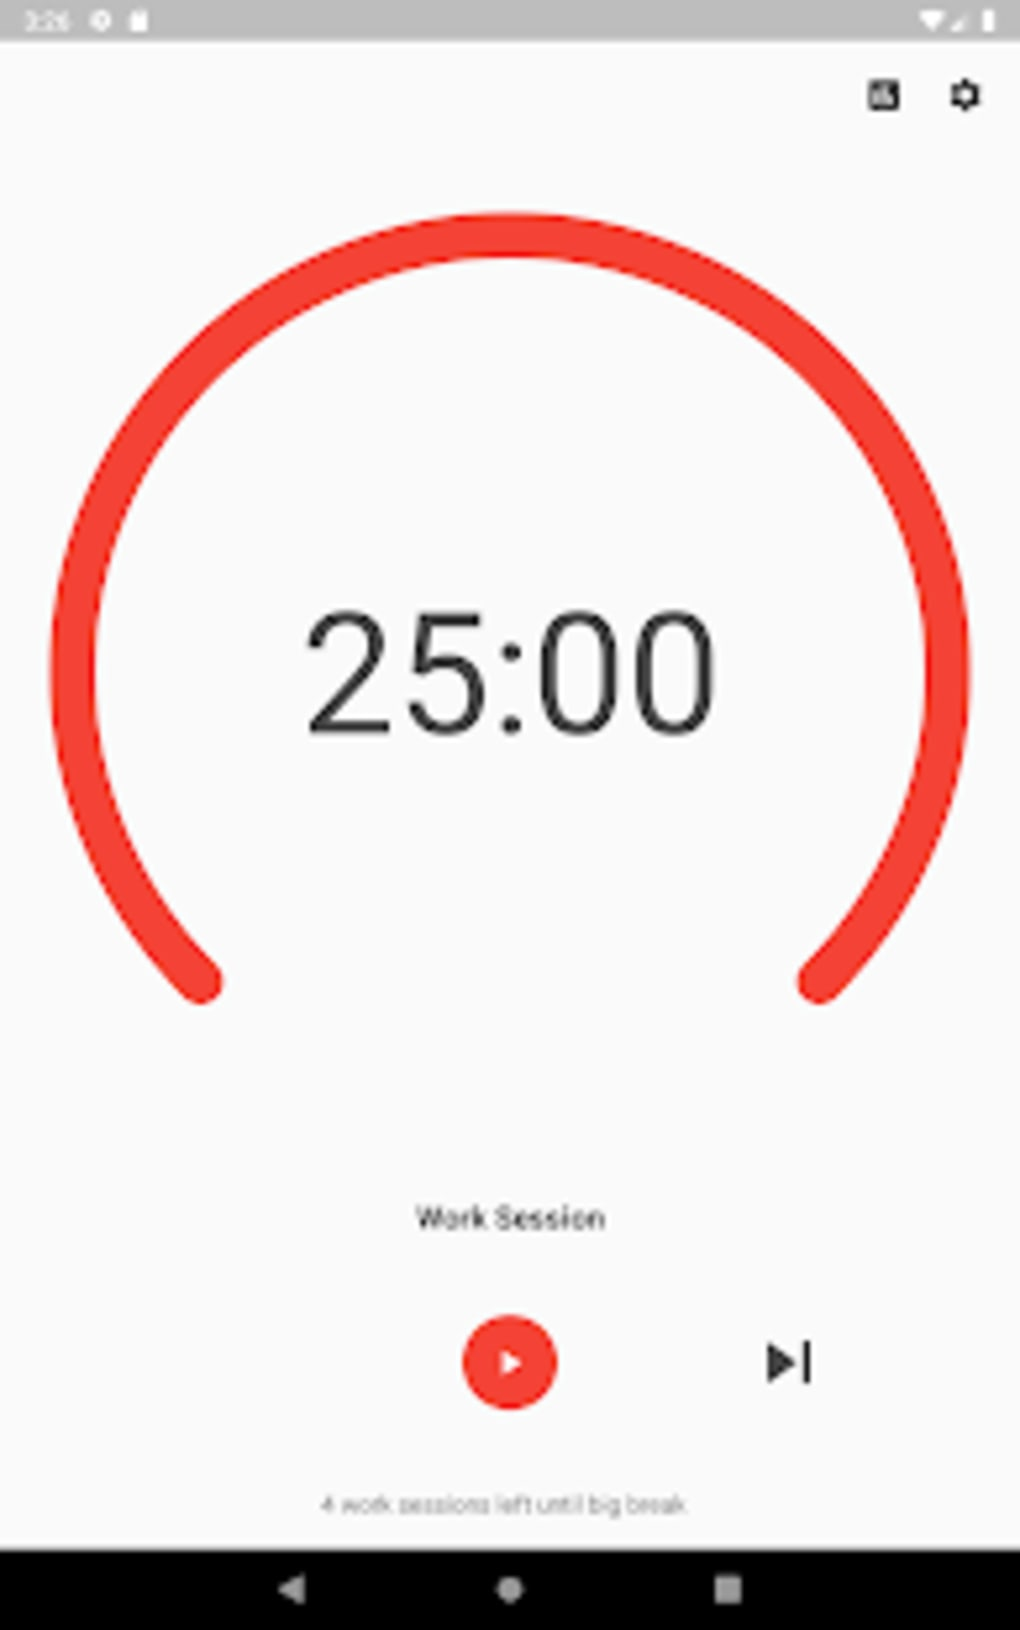 Pomodoro Smart Timer - A Productivity Timer App for Android